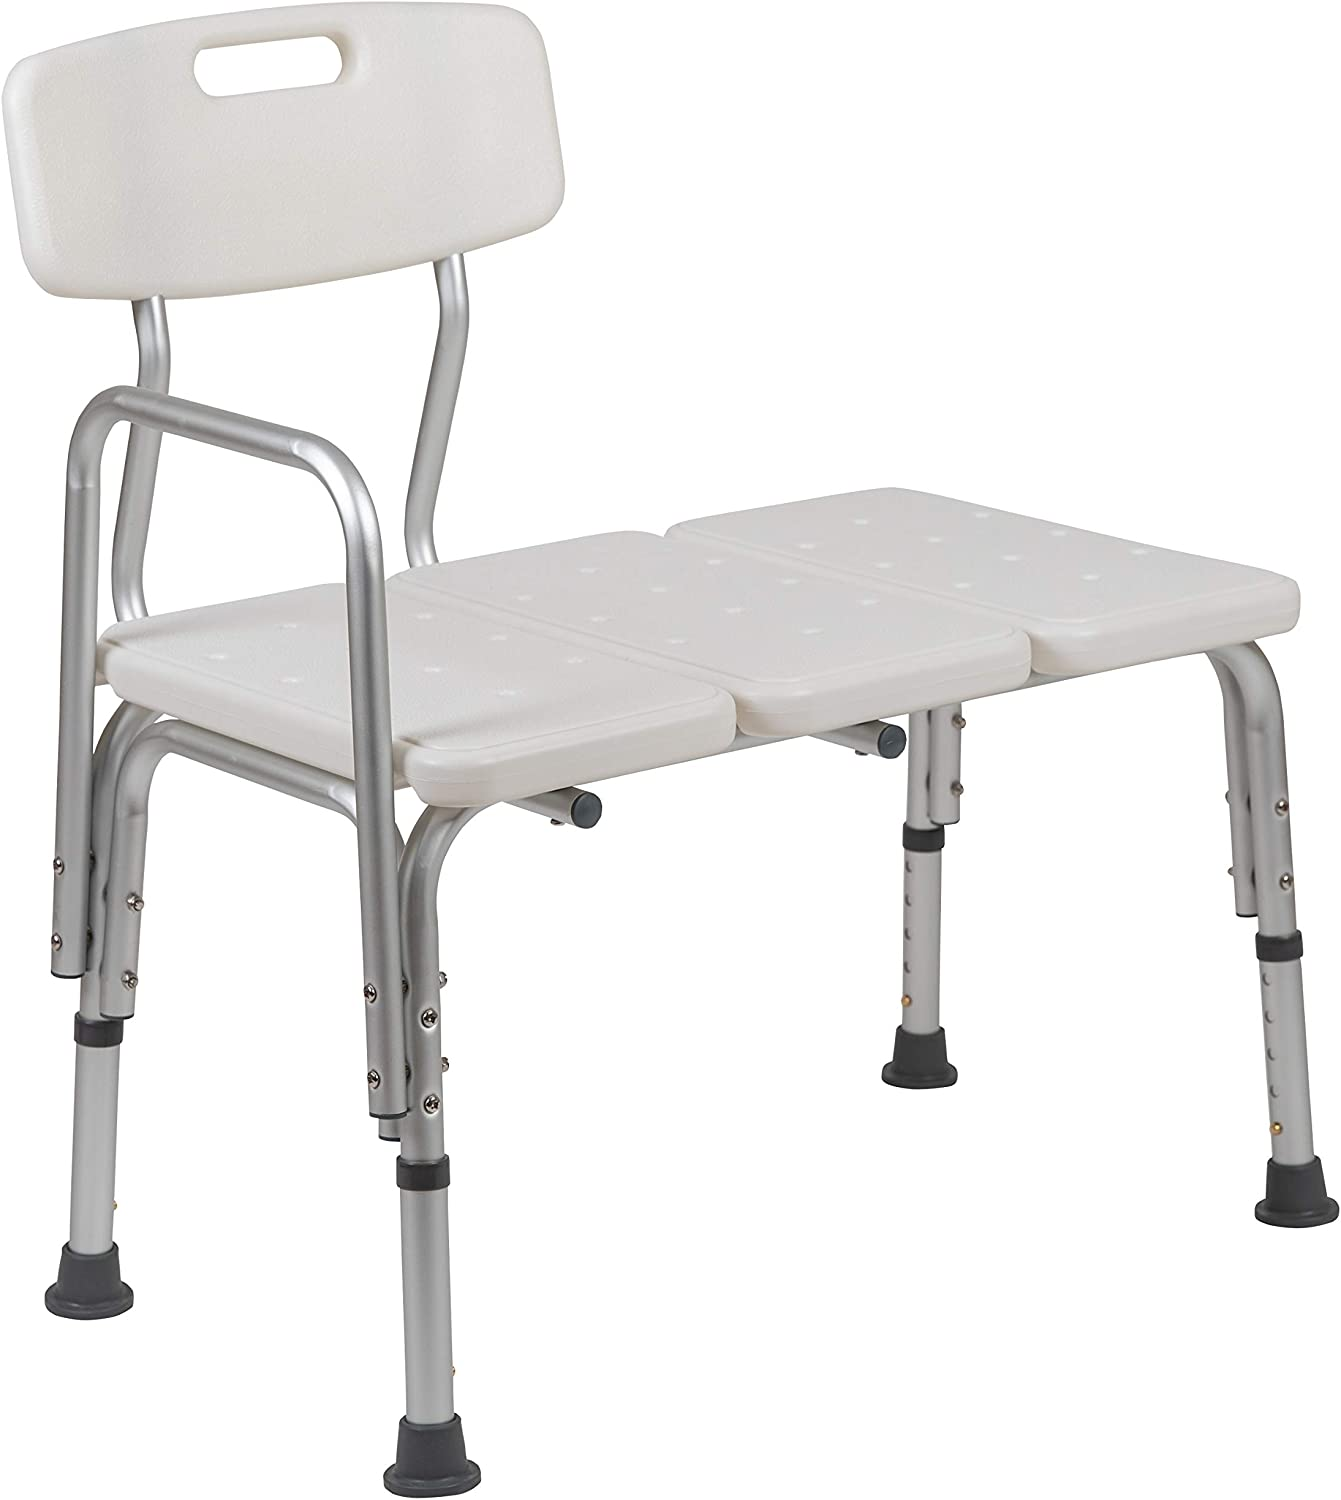 Flash Furniture HERCULES Series 300 Lb. Capacity Adjustable White Bath & Shower Transfer Bench with Back and Side Arm